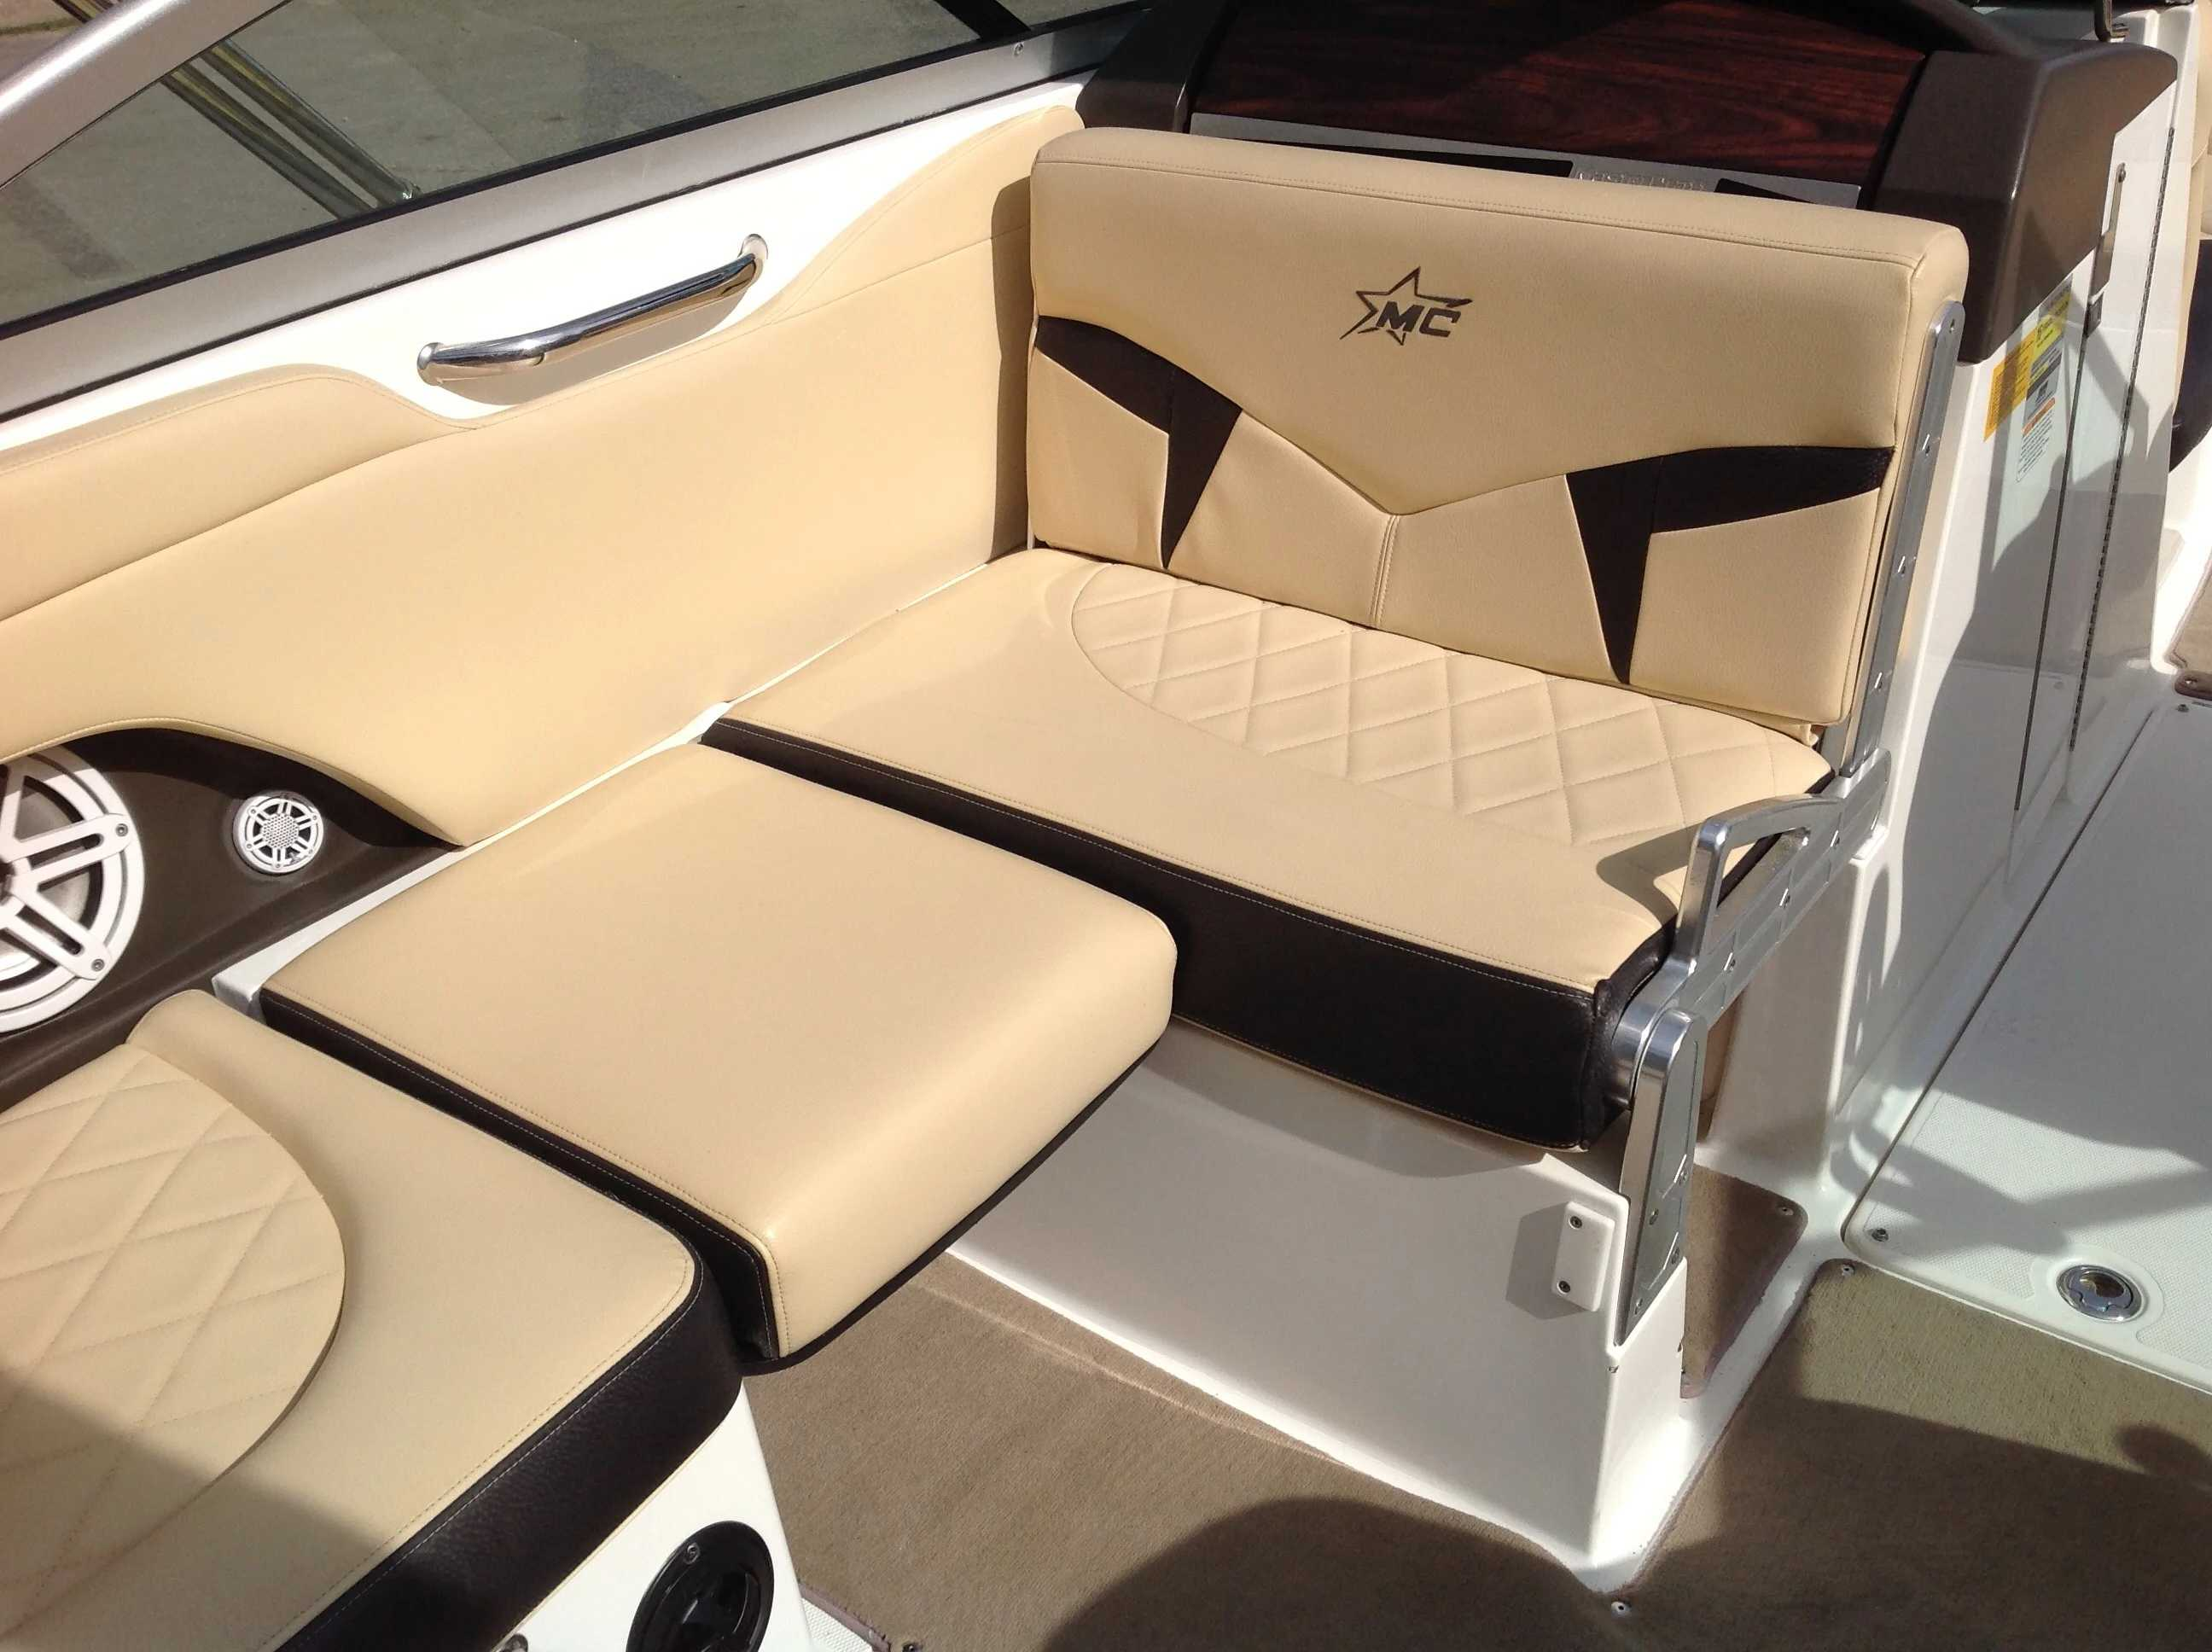 2010 Mastercraft boat for sale, model of the boat is Maristar 235 & Image # 10 of 16